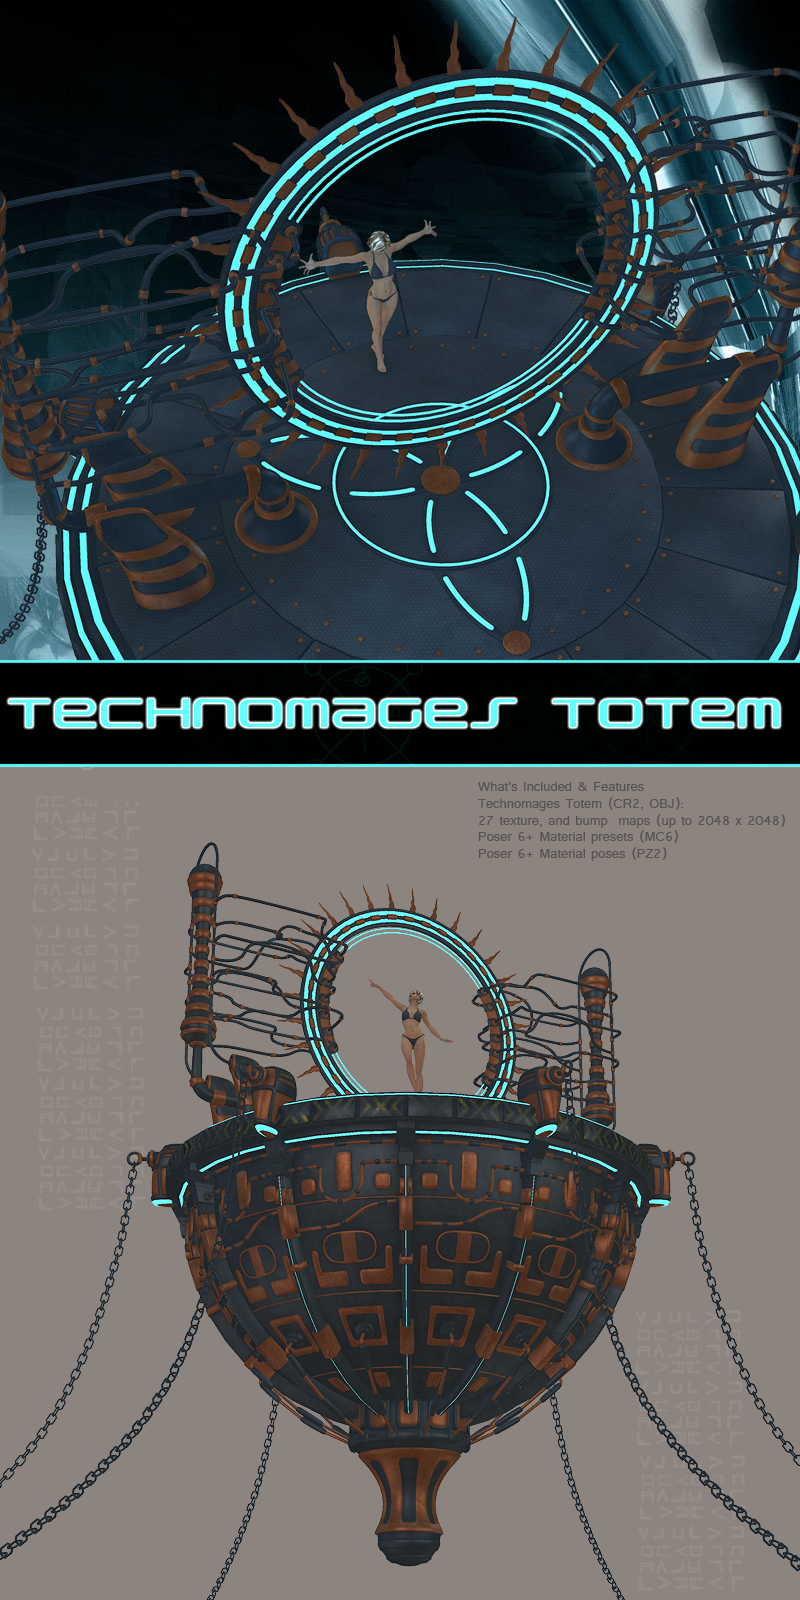 Technomages Totem by 1971s